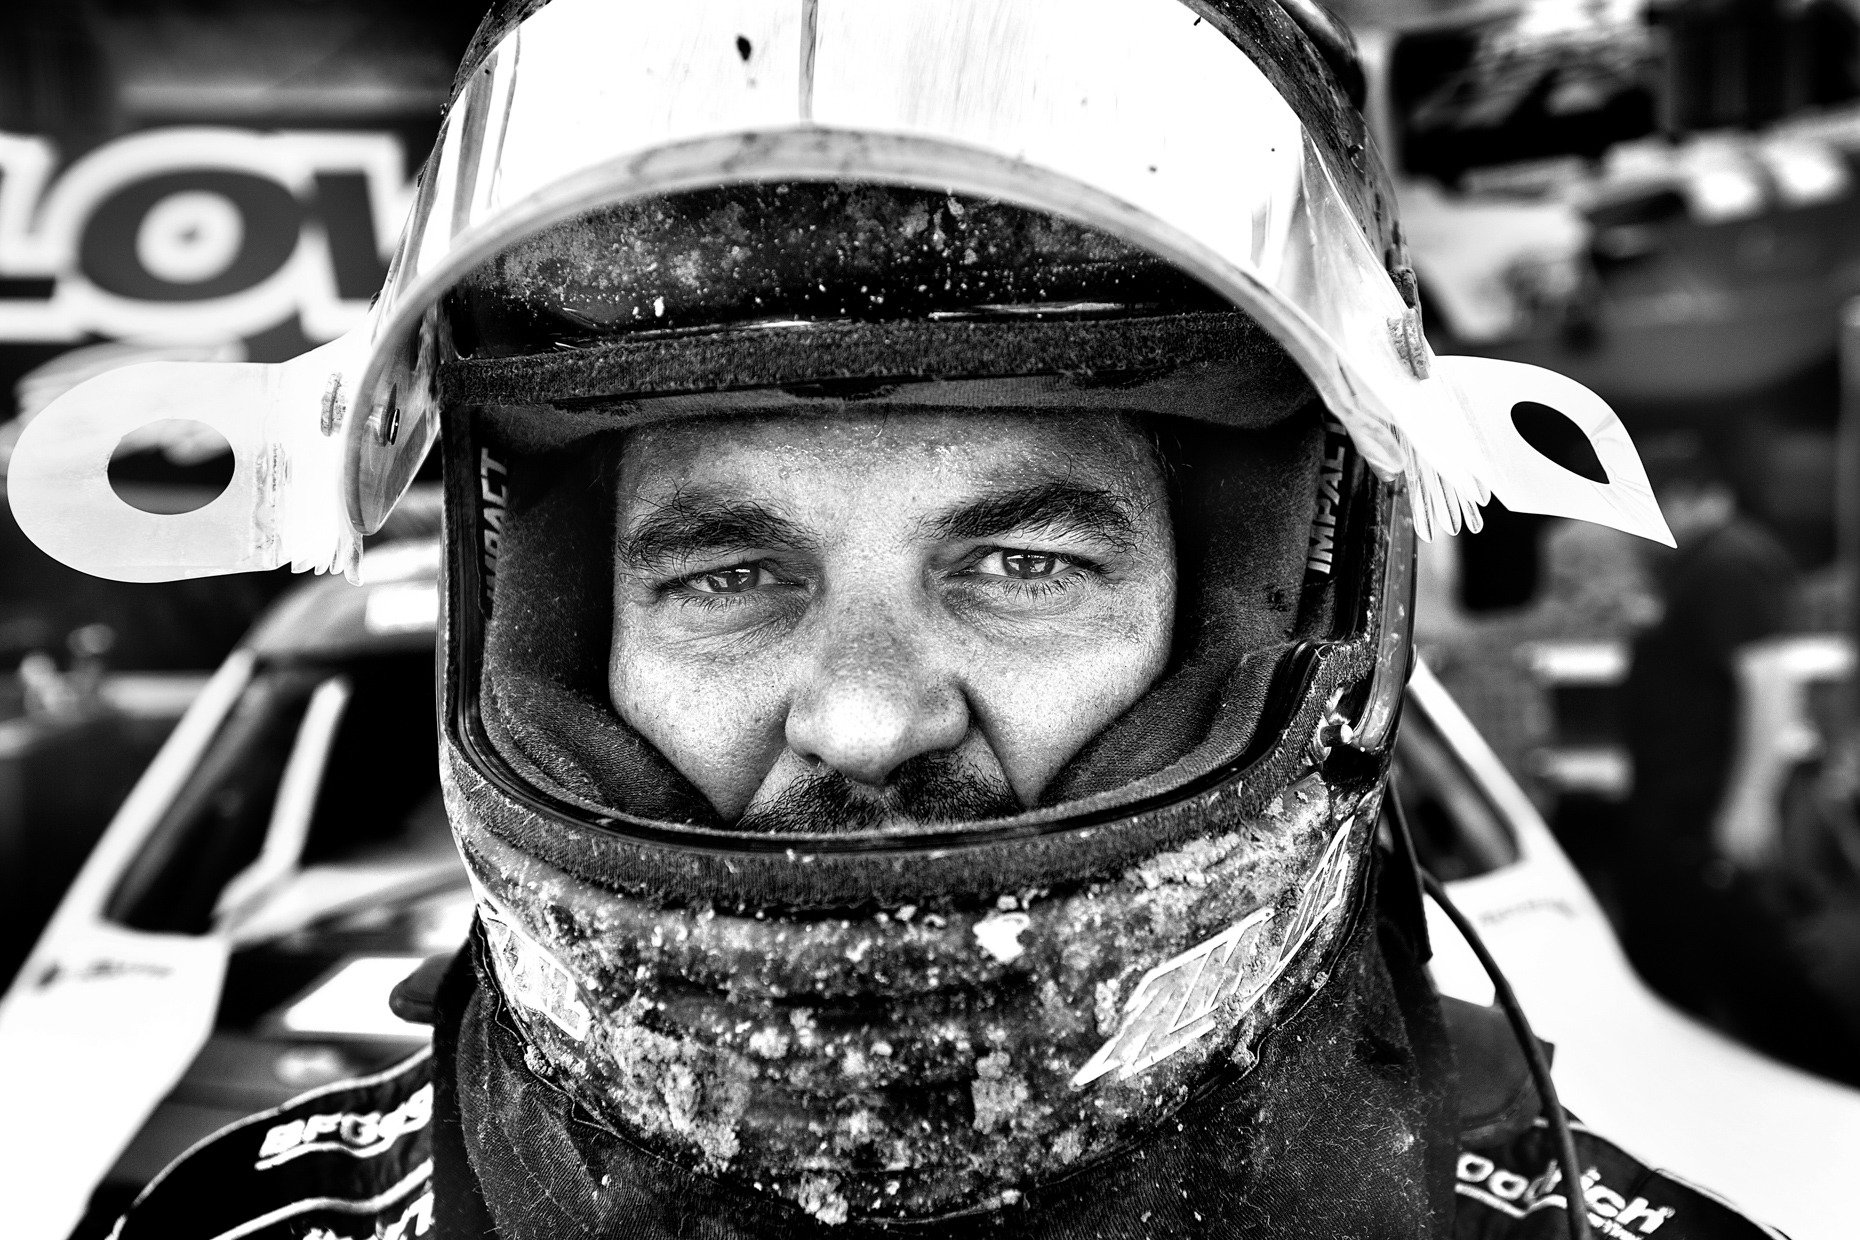 Brad Lovell TORC Offroad truck racer by Boston based commercial portrait photographer Brian Nevins